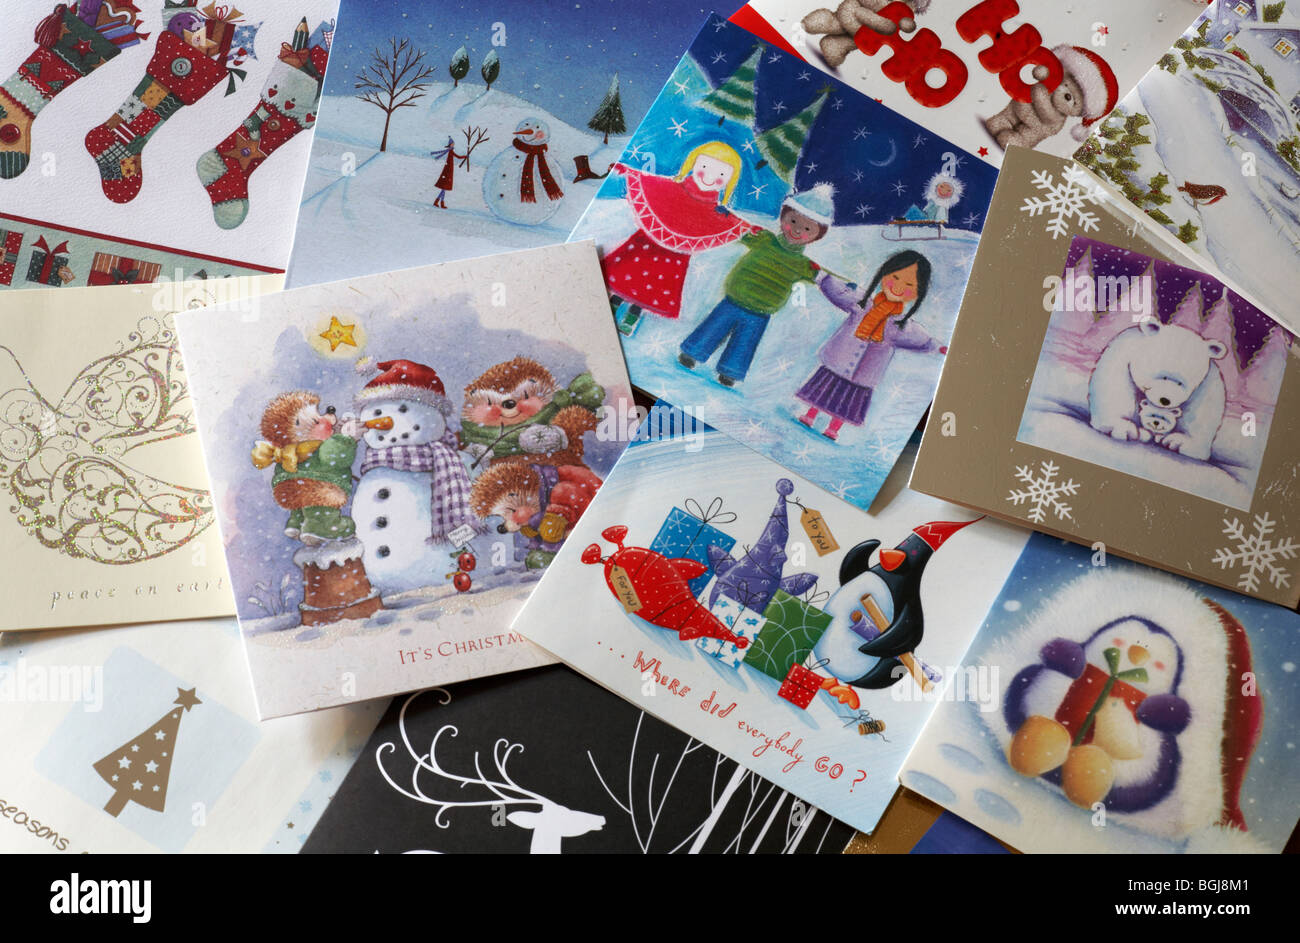 Christmas cards finished with and ready for recycling Stock Photo ...